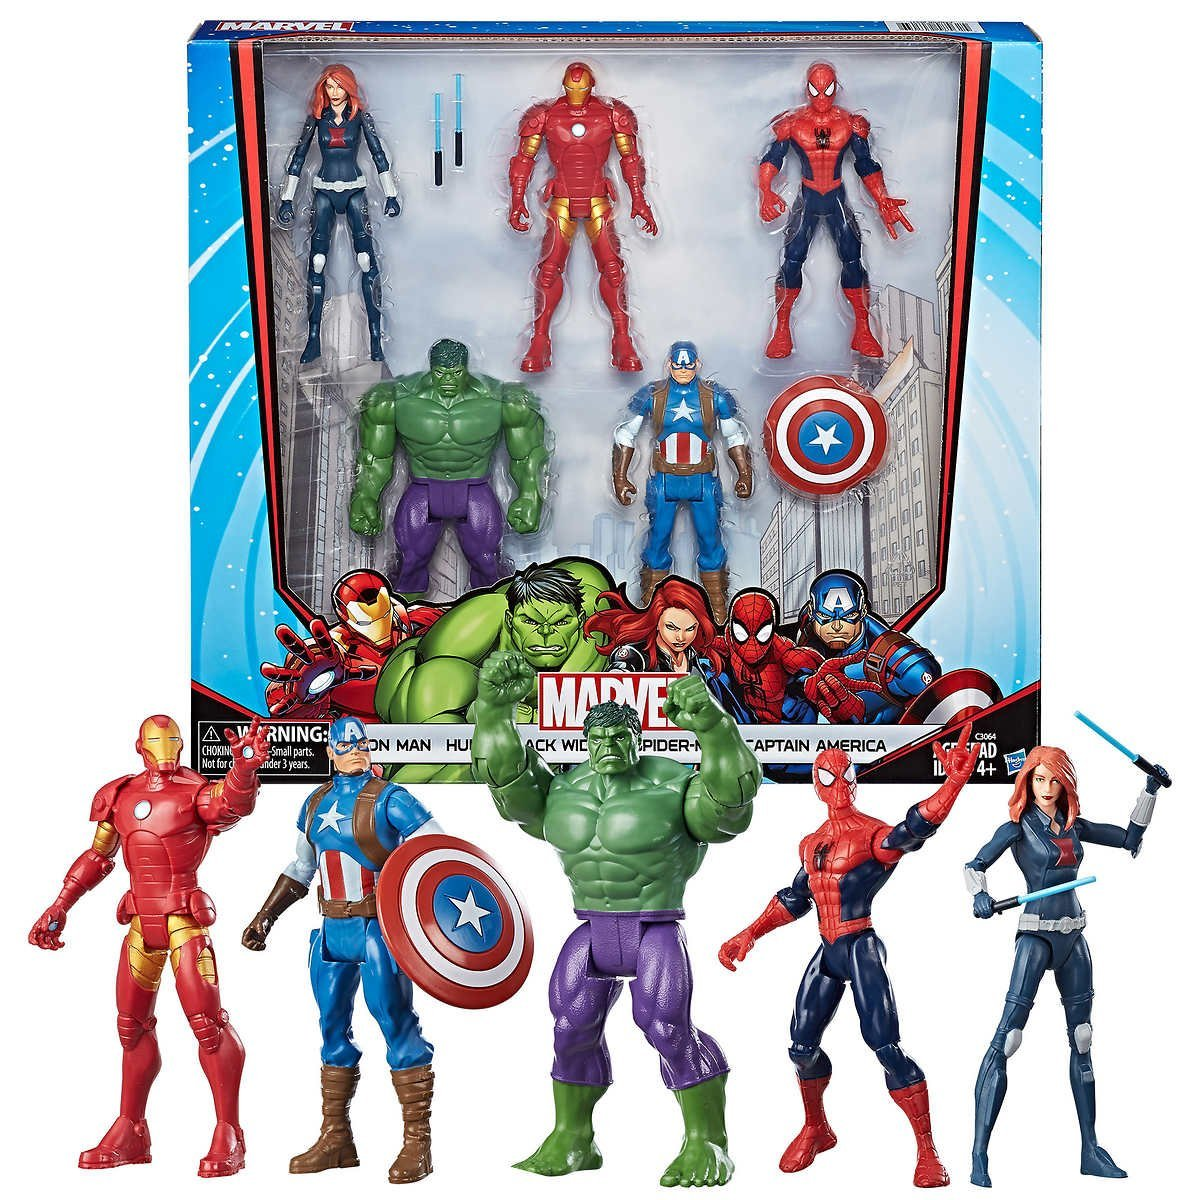 ALL New!!! Marvel Core Characters Action Figures 5-Pack includes Black Widow, Iron Man,... by